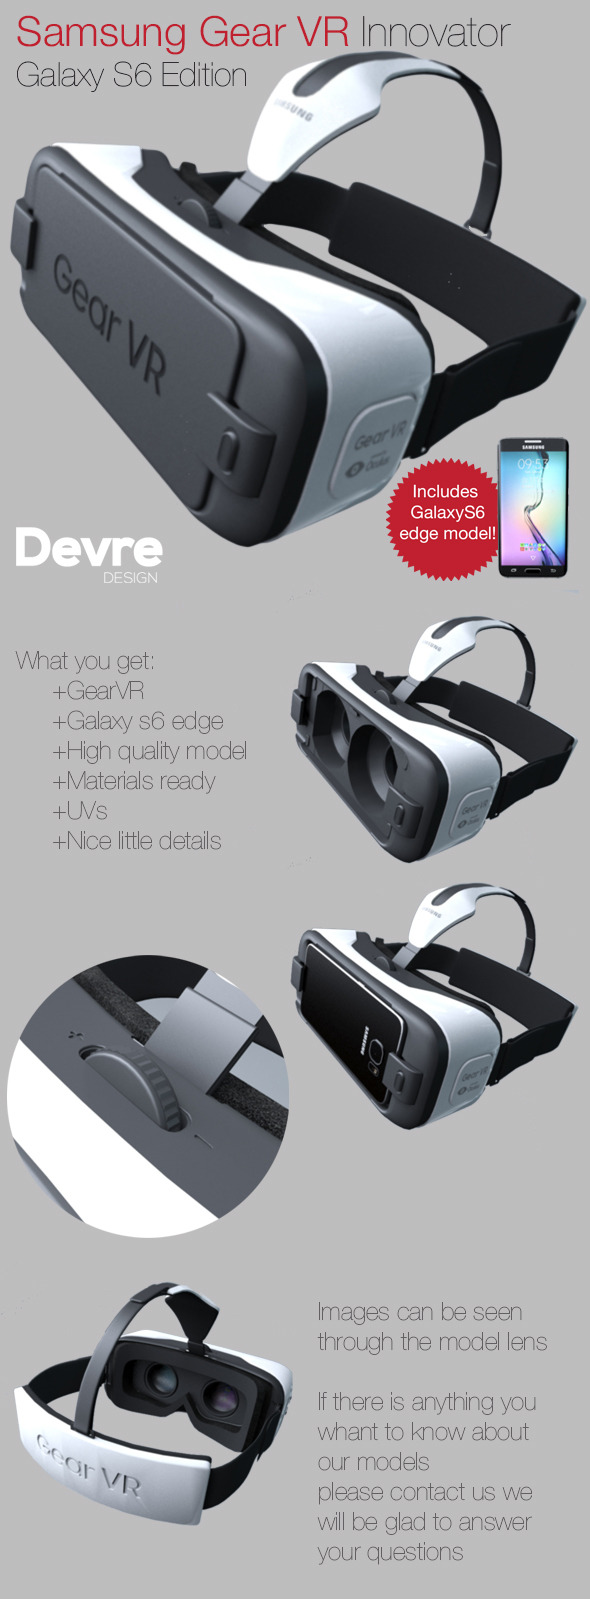 Samsung Gear VR innovator s6 edition  - 3DOcean Item for Sale